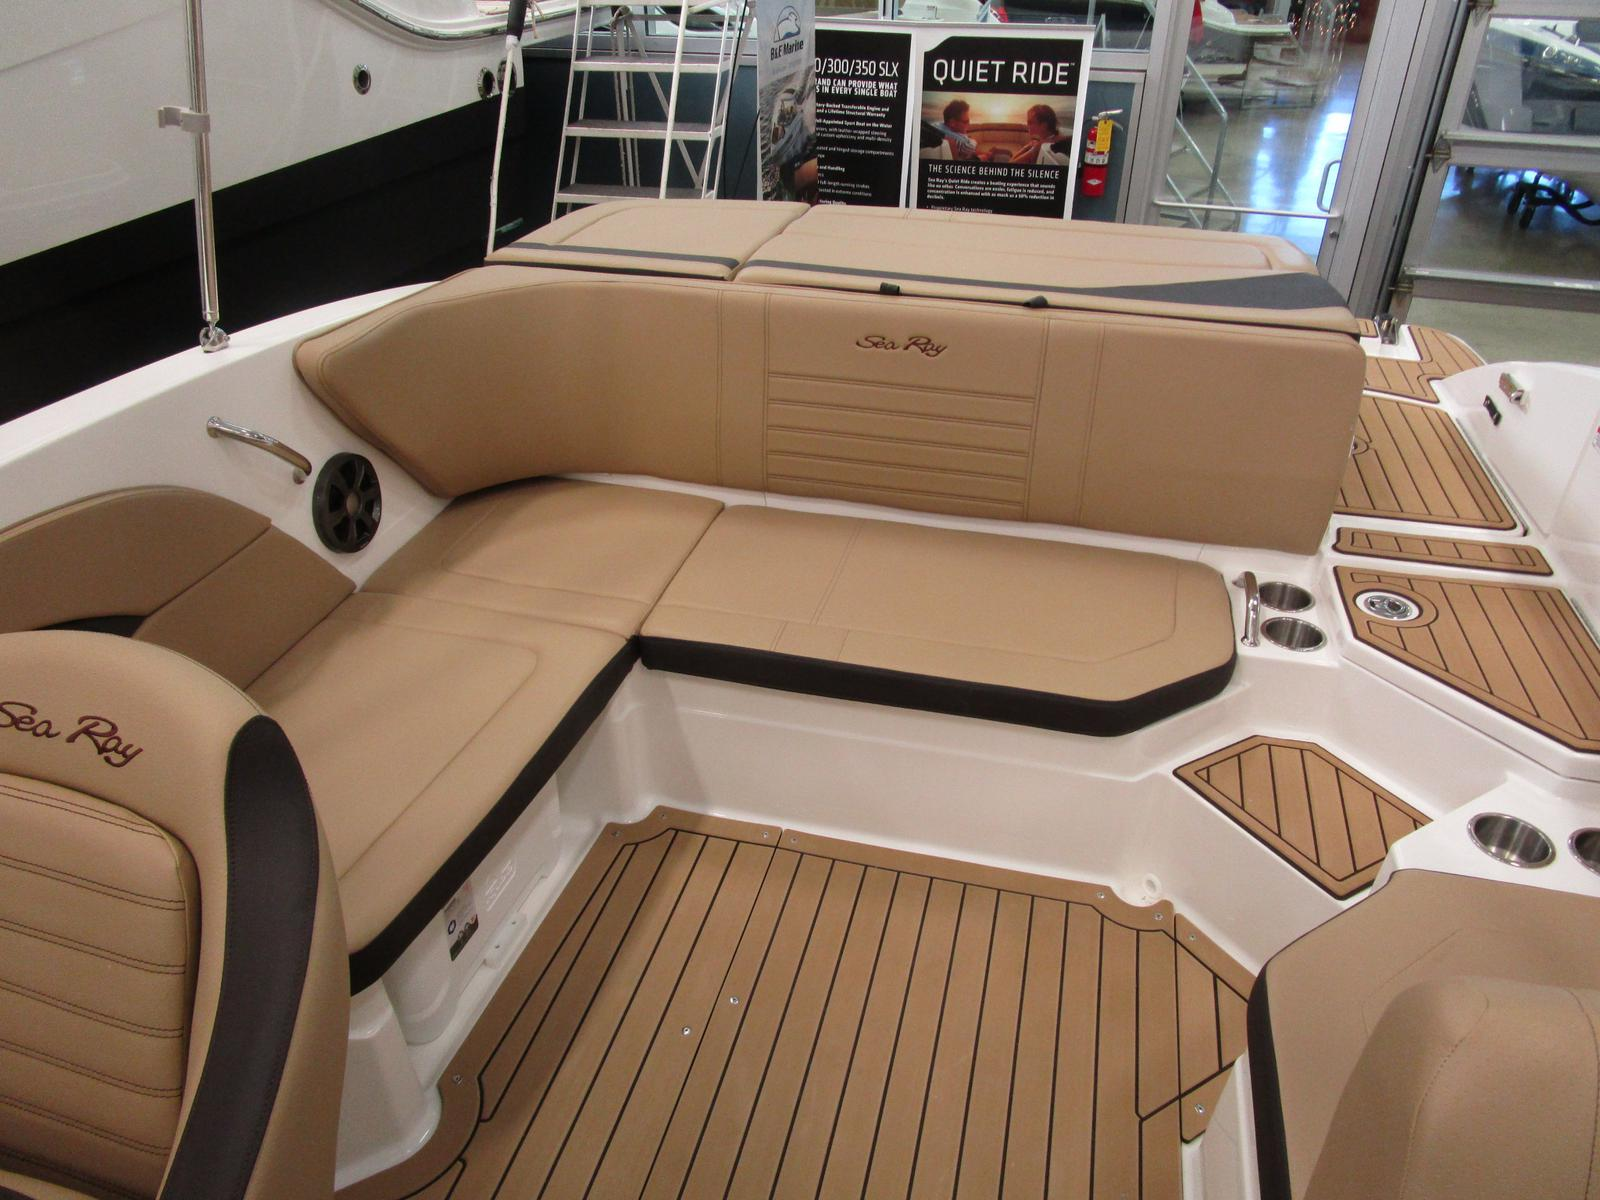 2019 Sea Ray boat for sale, model of the boat is SPX 210 & Image # 5 of 7